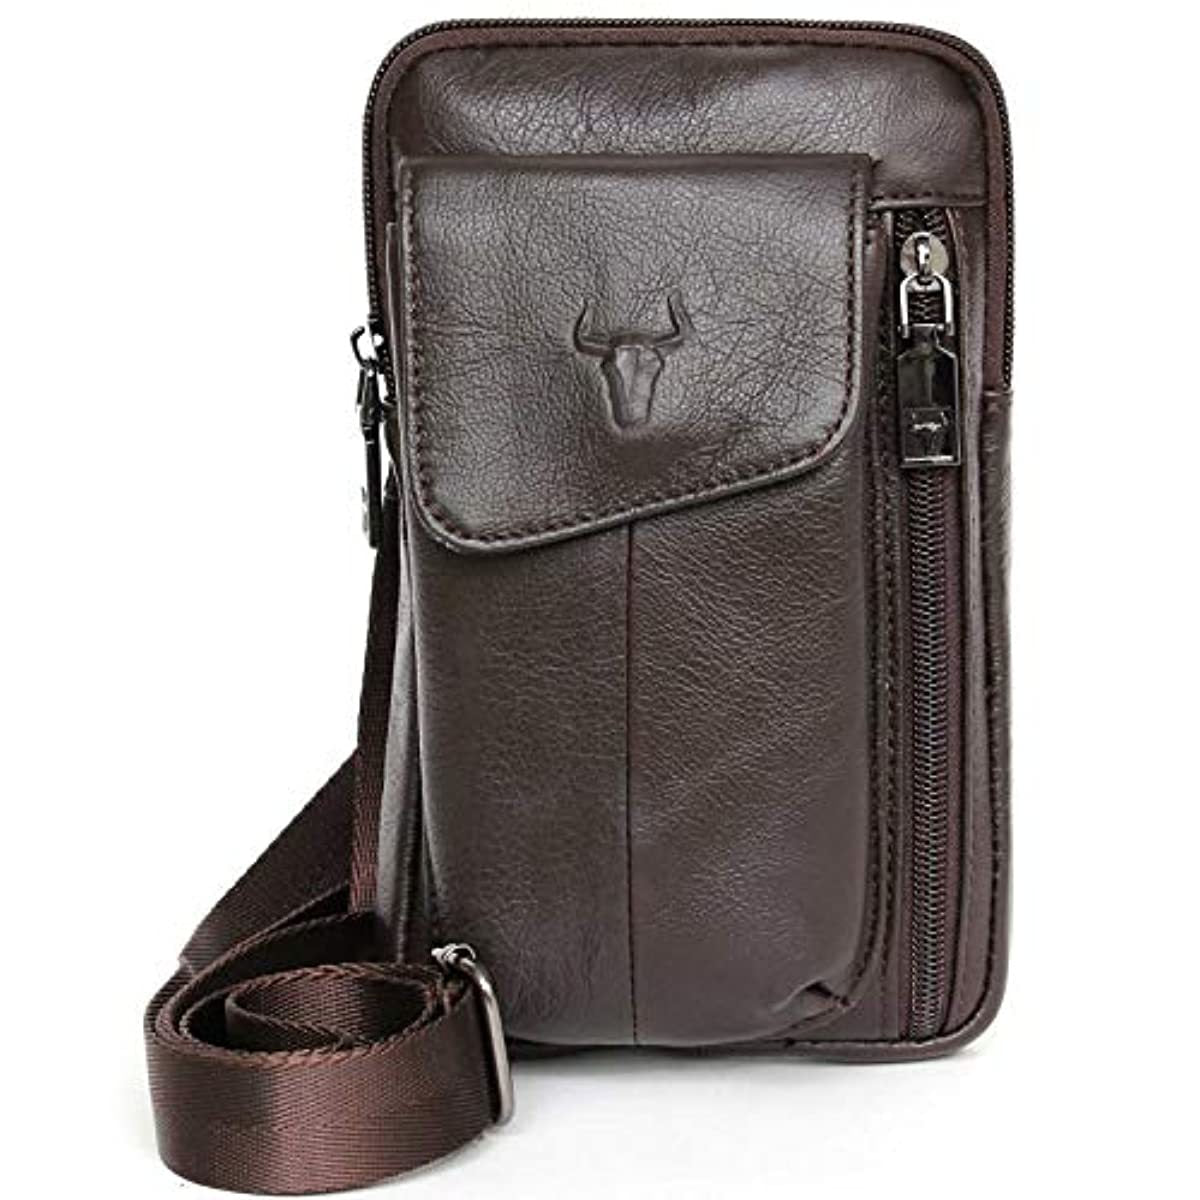 Phone Bag Smartphone Holsters Brown Leather Messenger Bag Travel Waist Pack 7017 - ENCACC